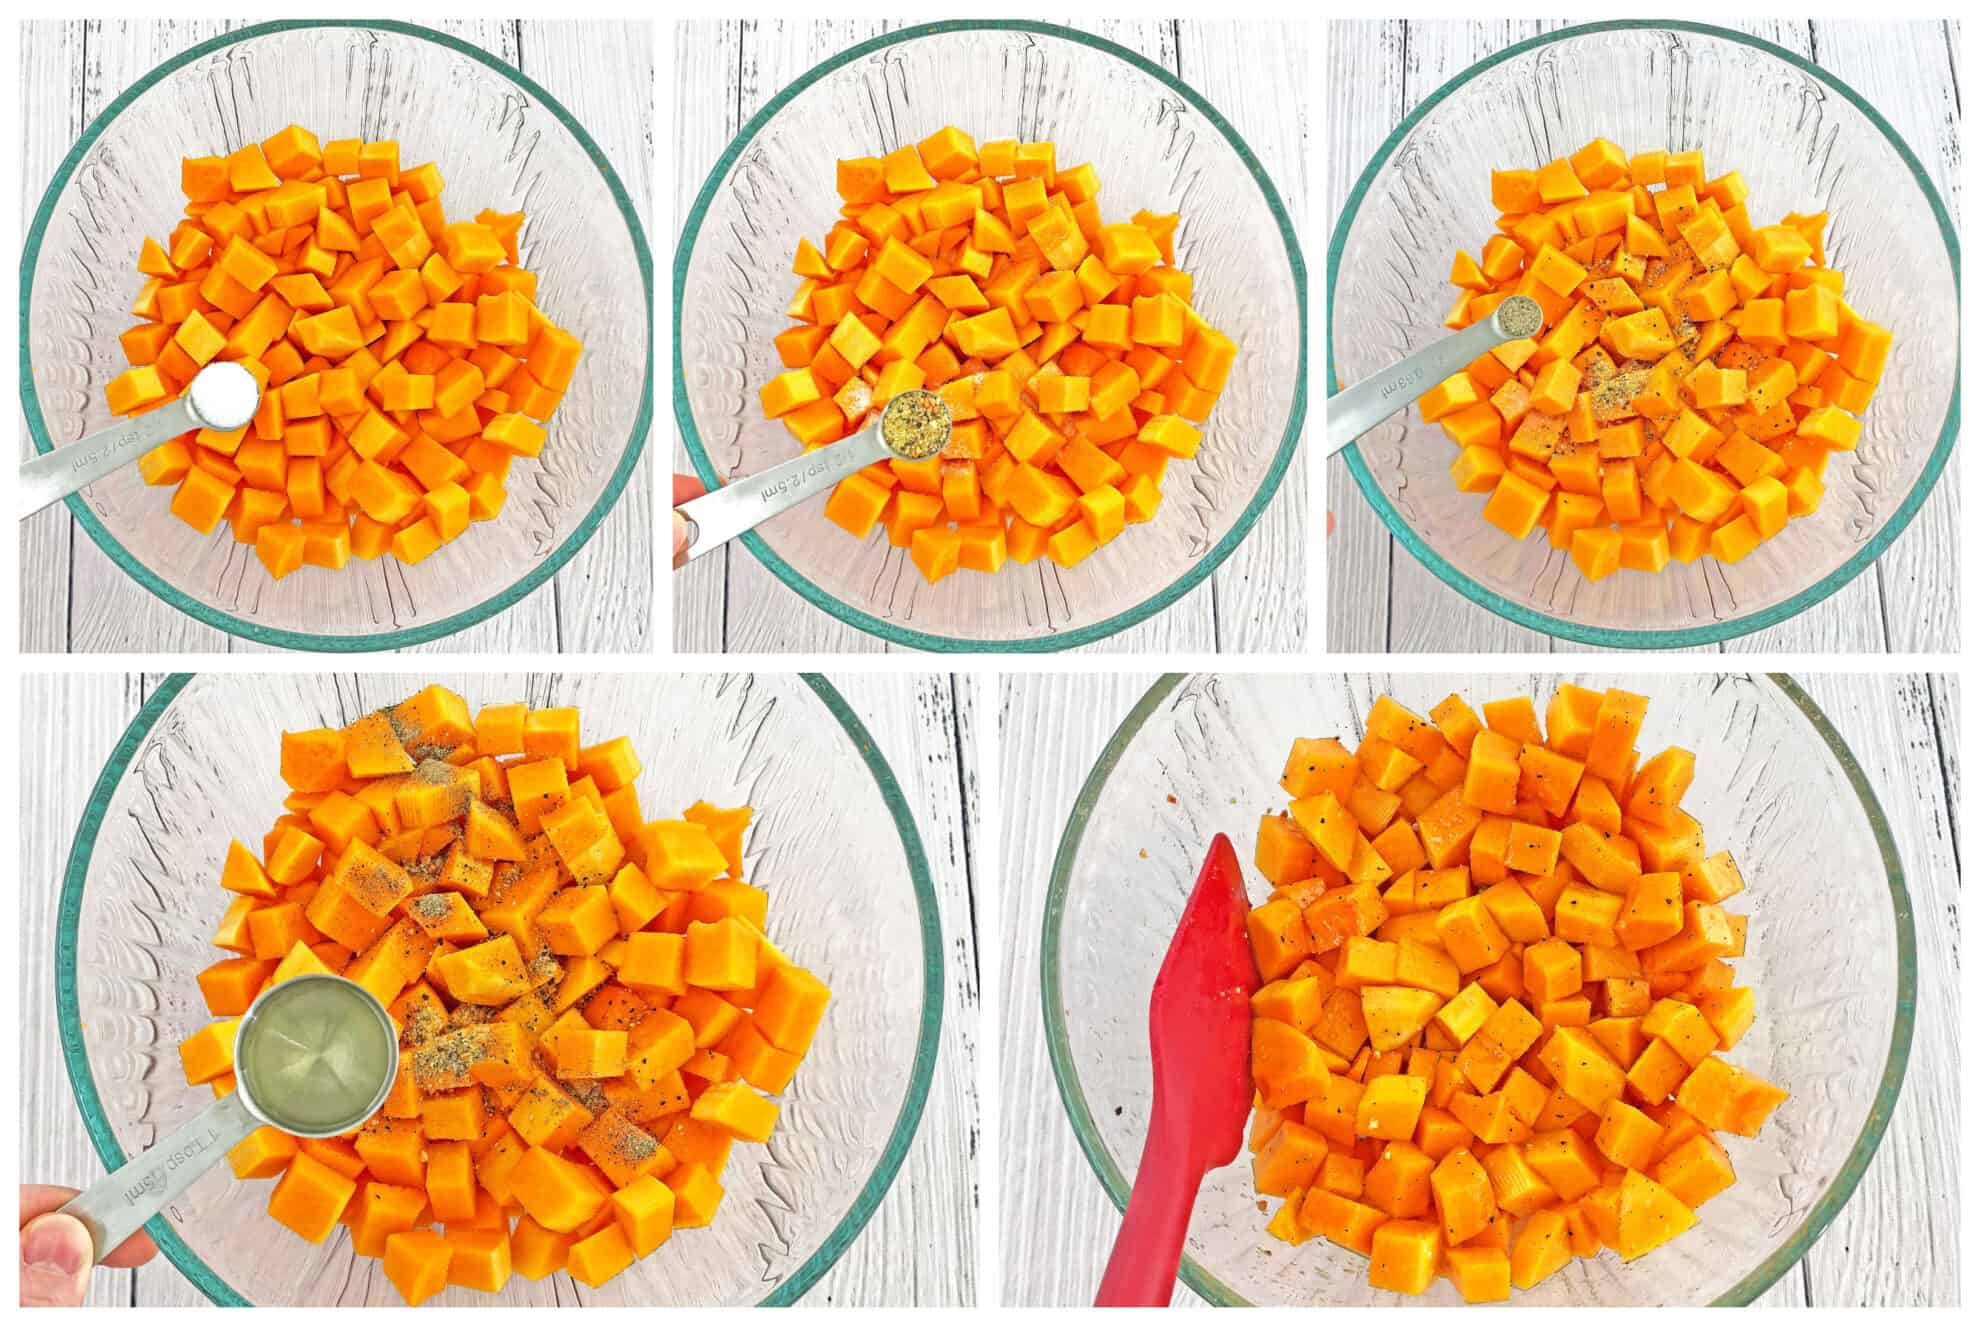 Easy Roasted Butternut Squash Recipe is very nutritious, tasty, and quick to make. Another fall staple, and a must-have at your Thanksgiving gathering. It's beautiful and deep color that matches the season to decorate your table, and it's delicious, smooth taste and texture. #organicbutternutsquash #roastedbutternutsquash #fallcooking #valyastasteofhome